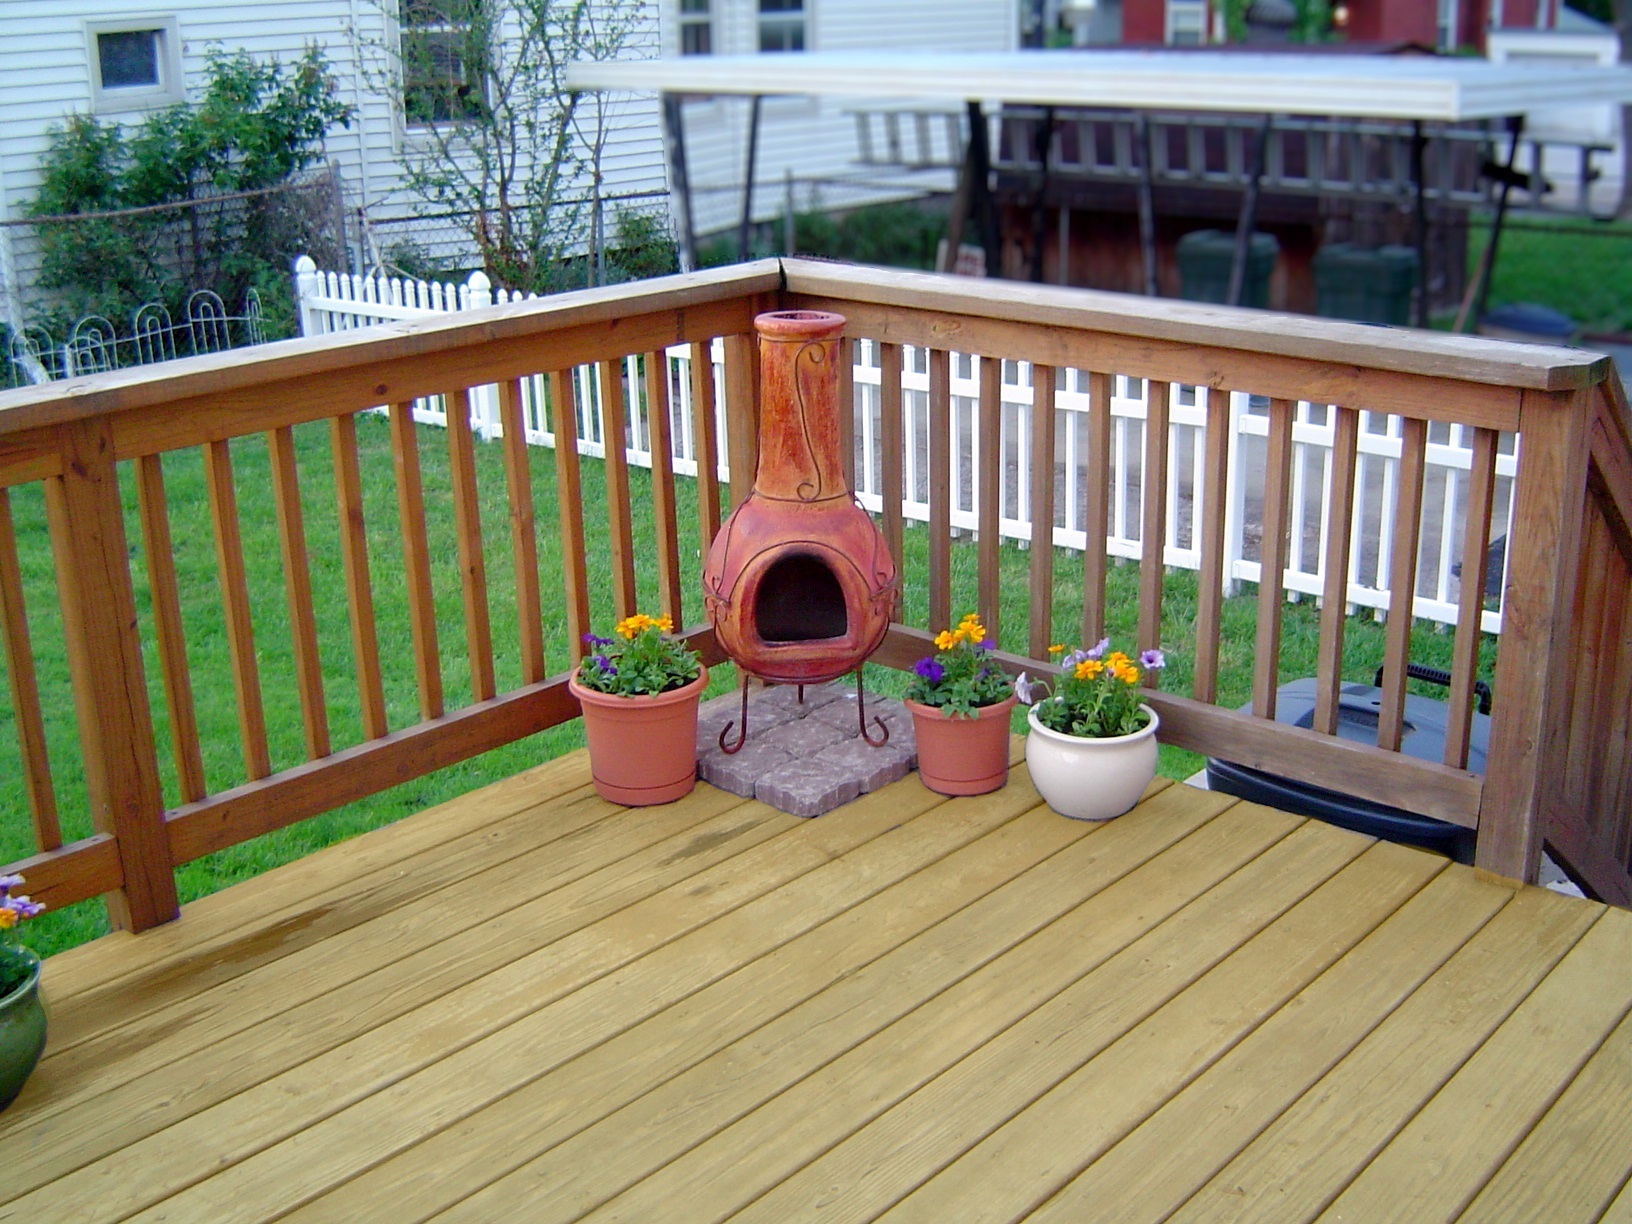 Mesmerizing Can You Use A Chiminea On Wood Deck In Our New Inside Size 1632